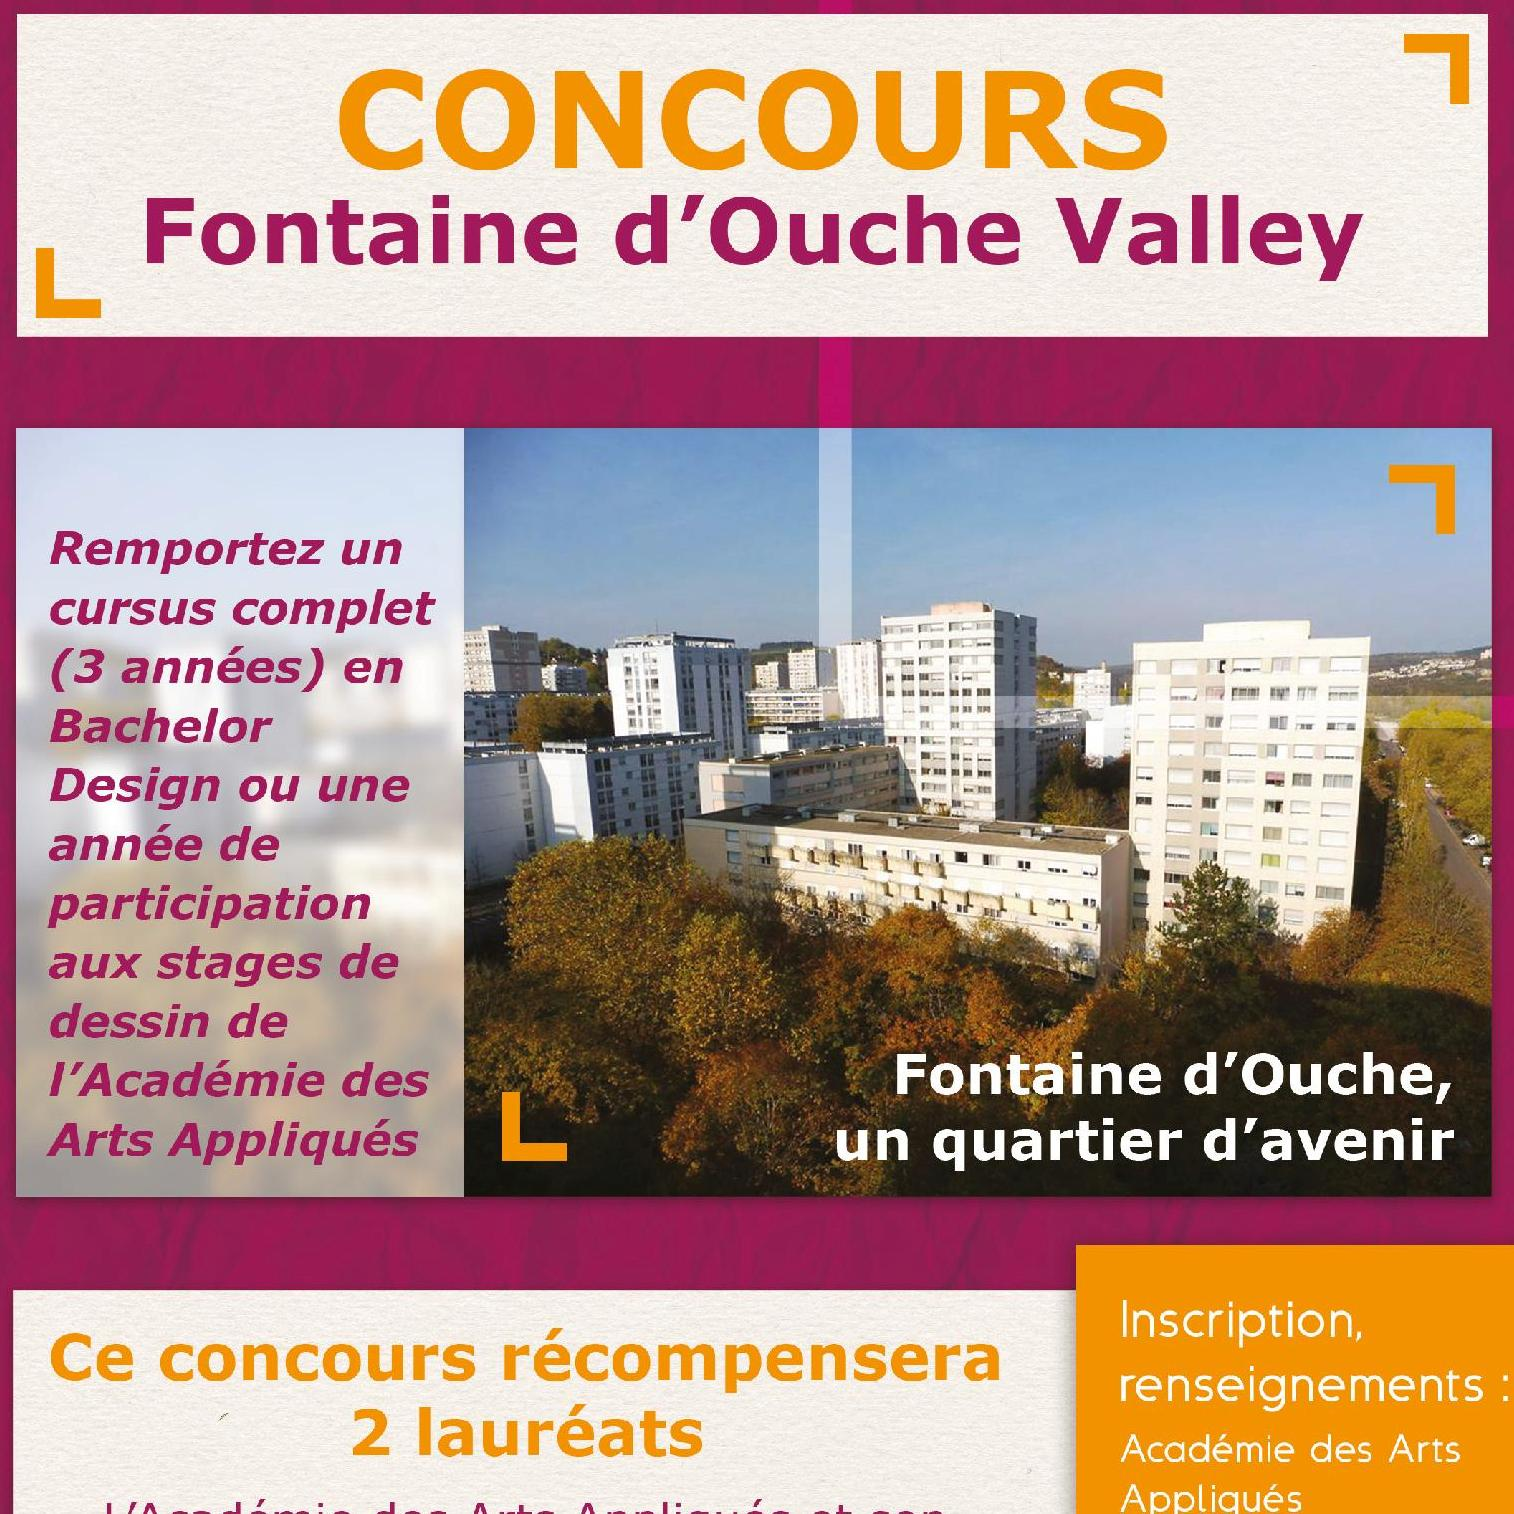 Concours Fontaine d'Ouche Valley |